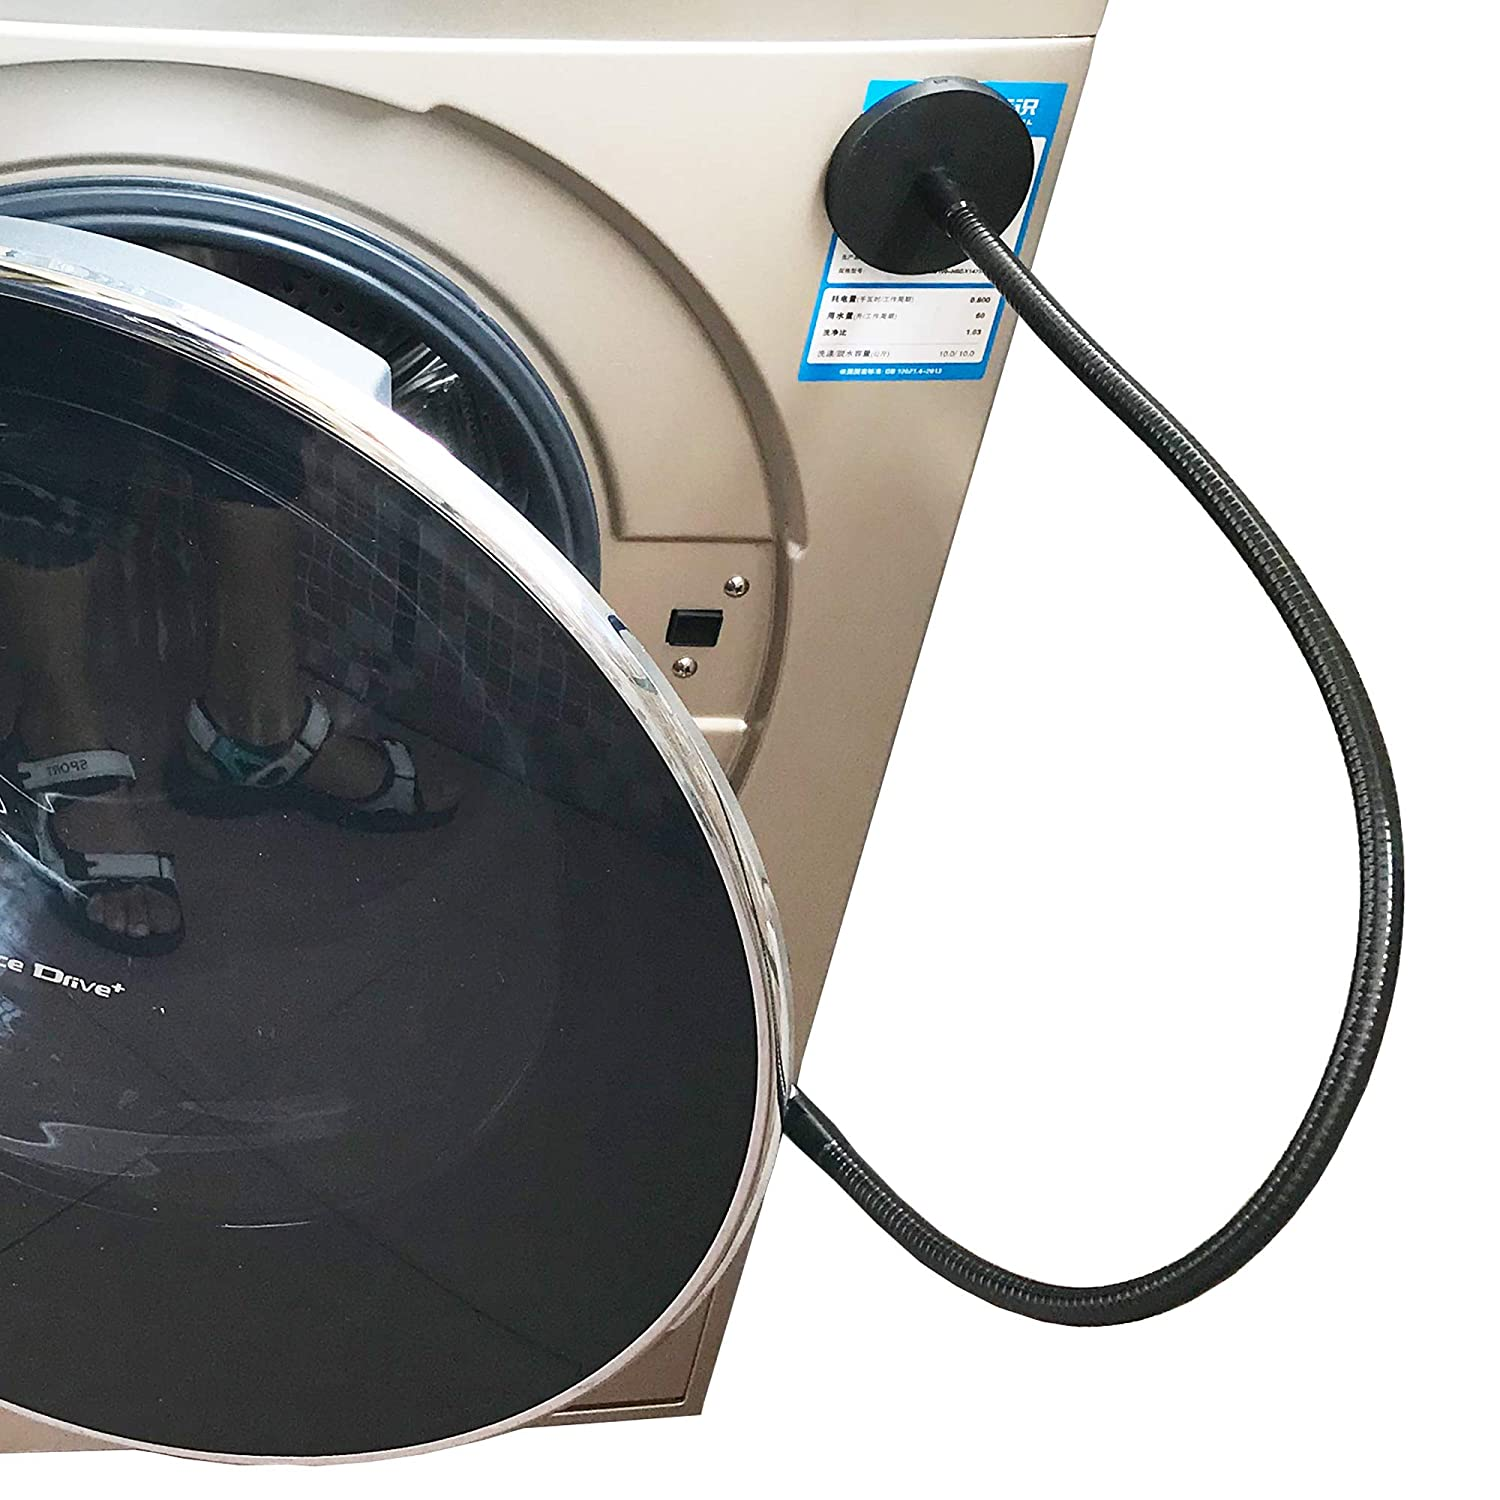 YYST Laundry Keeper to Keep The Washer Clean and Dry - No Washer YI YA SU